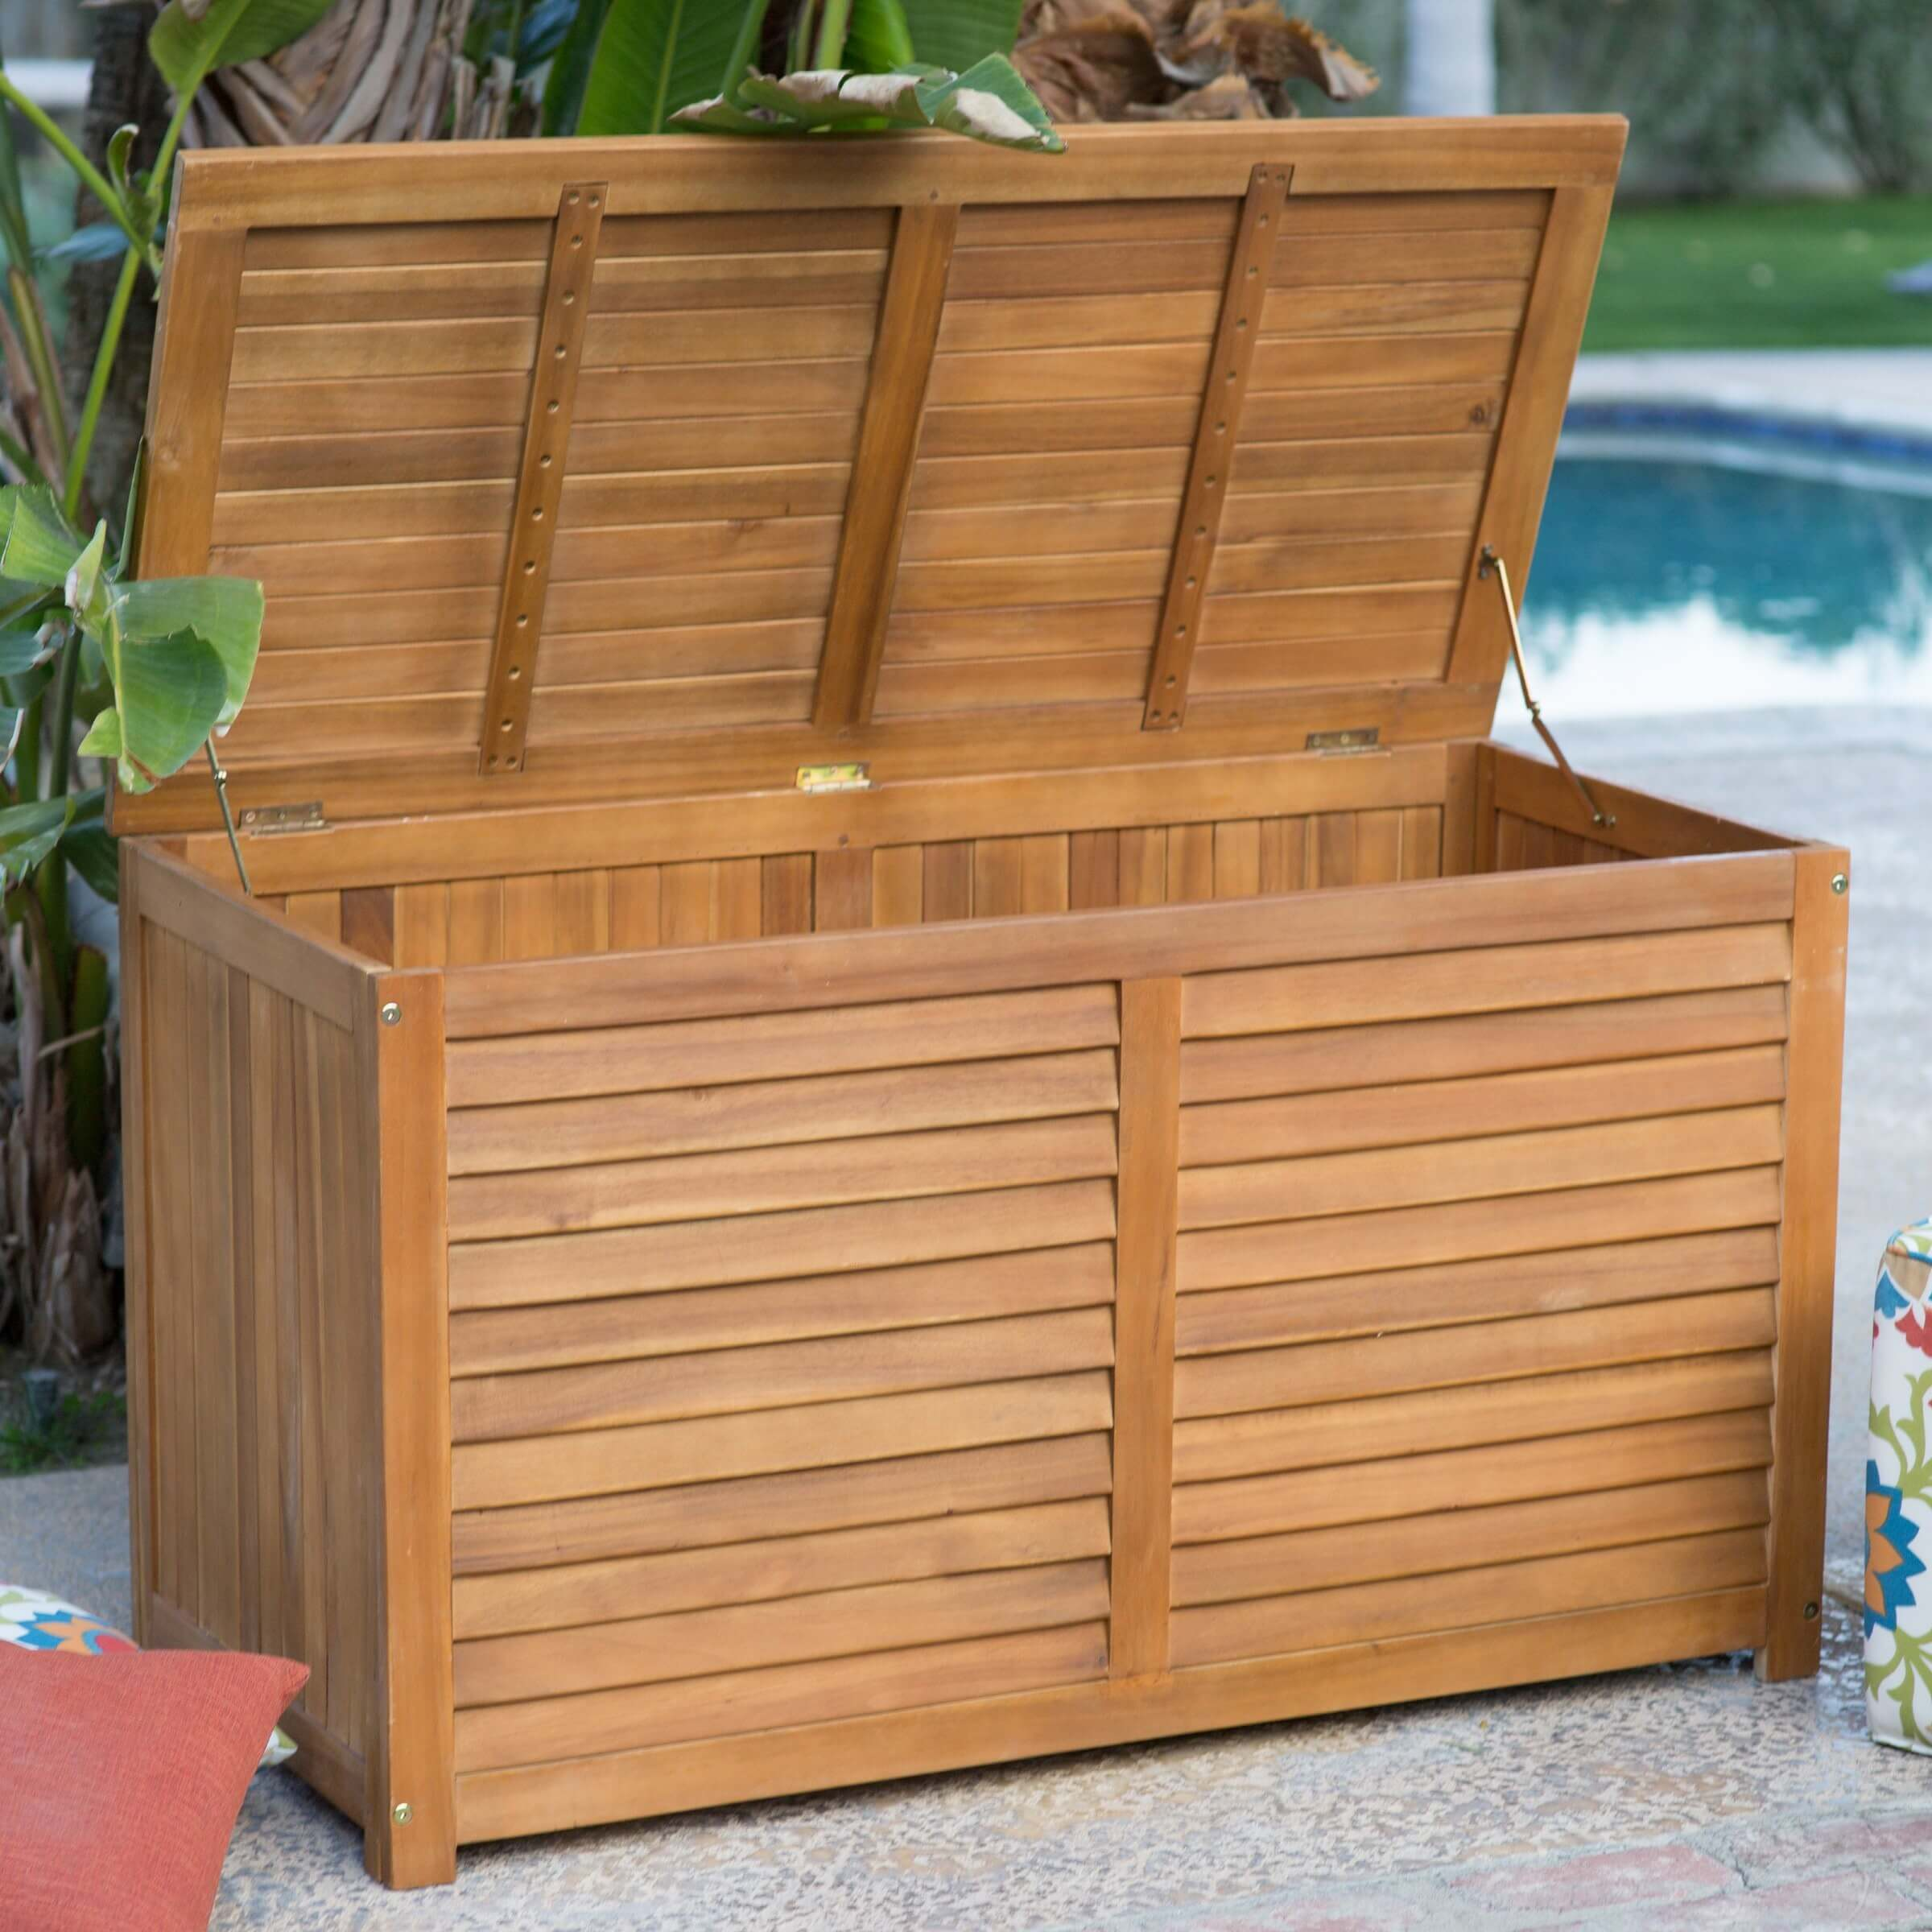 Designed with a slat construction for ventilation this acacia wood storage box has a natural & Top 10 Types of Outdoor Deck Storage Boxes